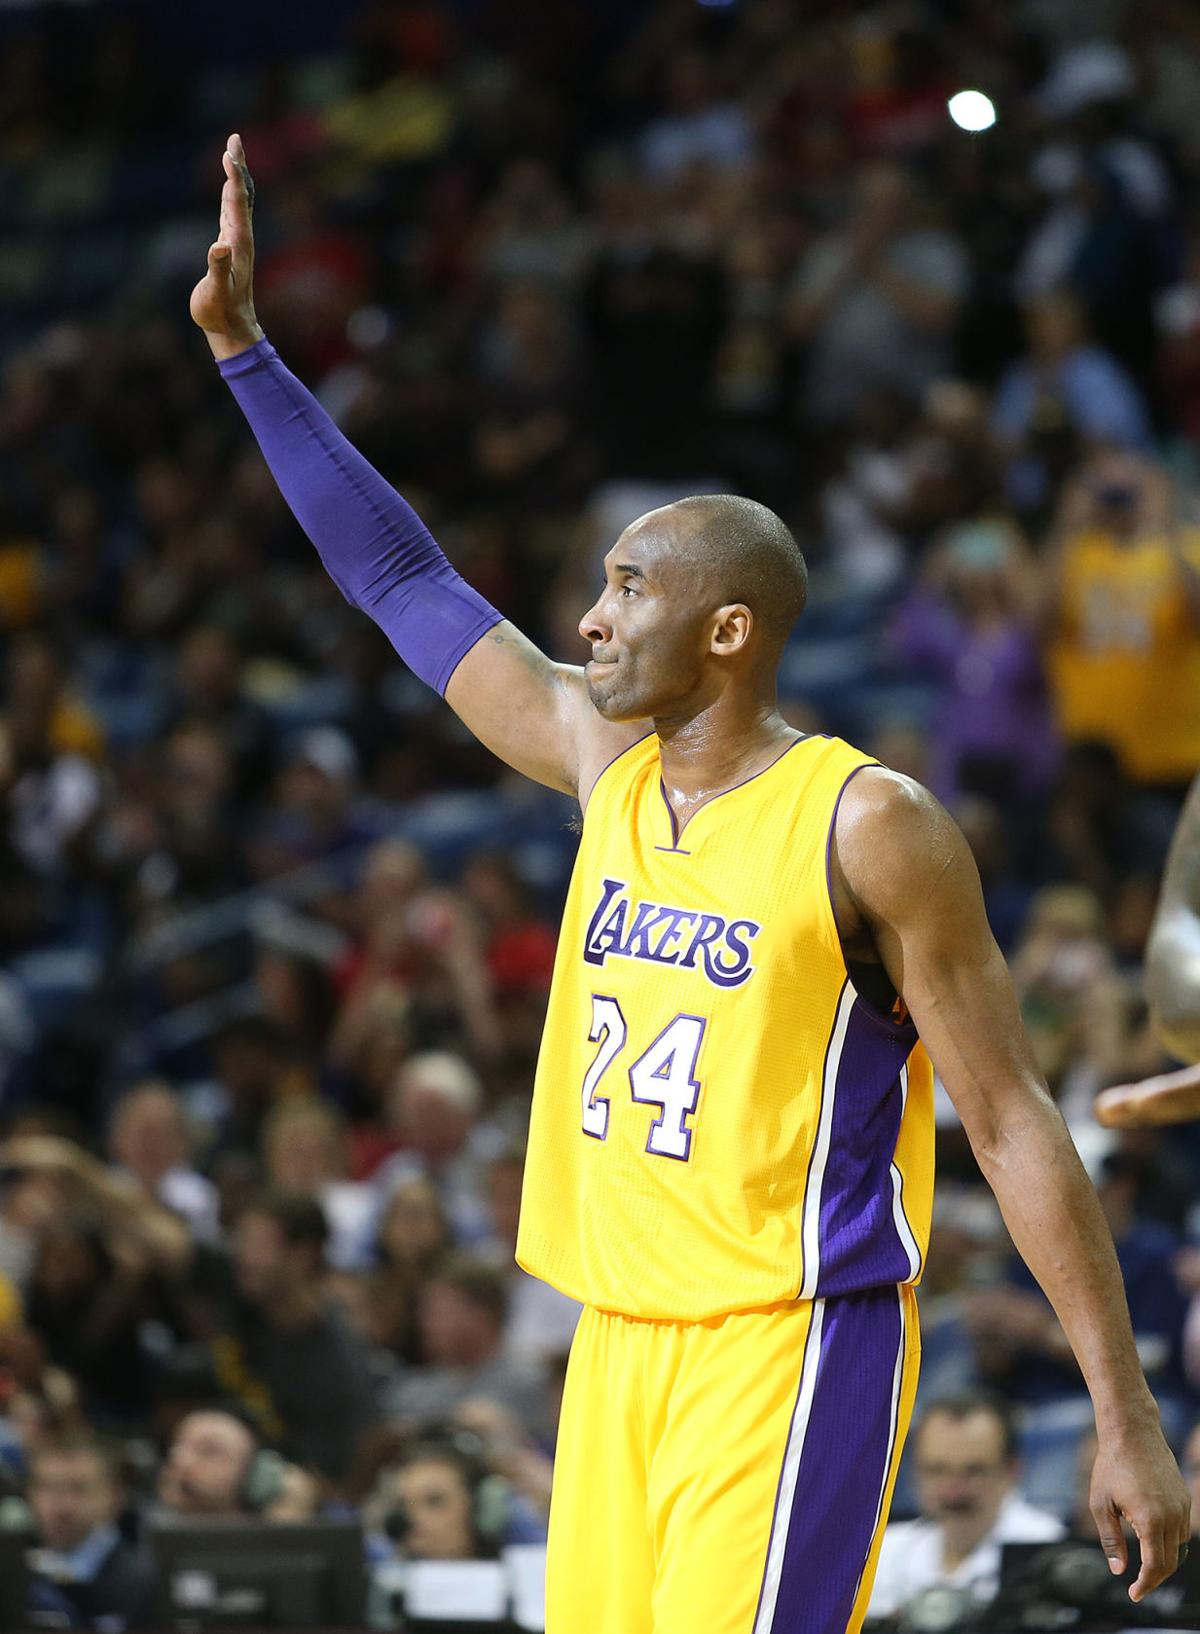 Kobe Bryant Kobe: Los Angeles Lakers at New Orleans Pelicans